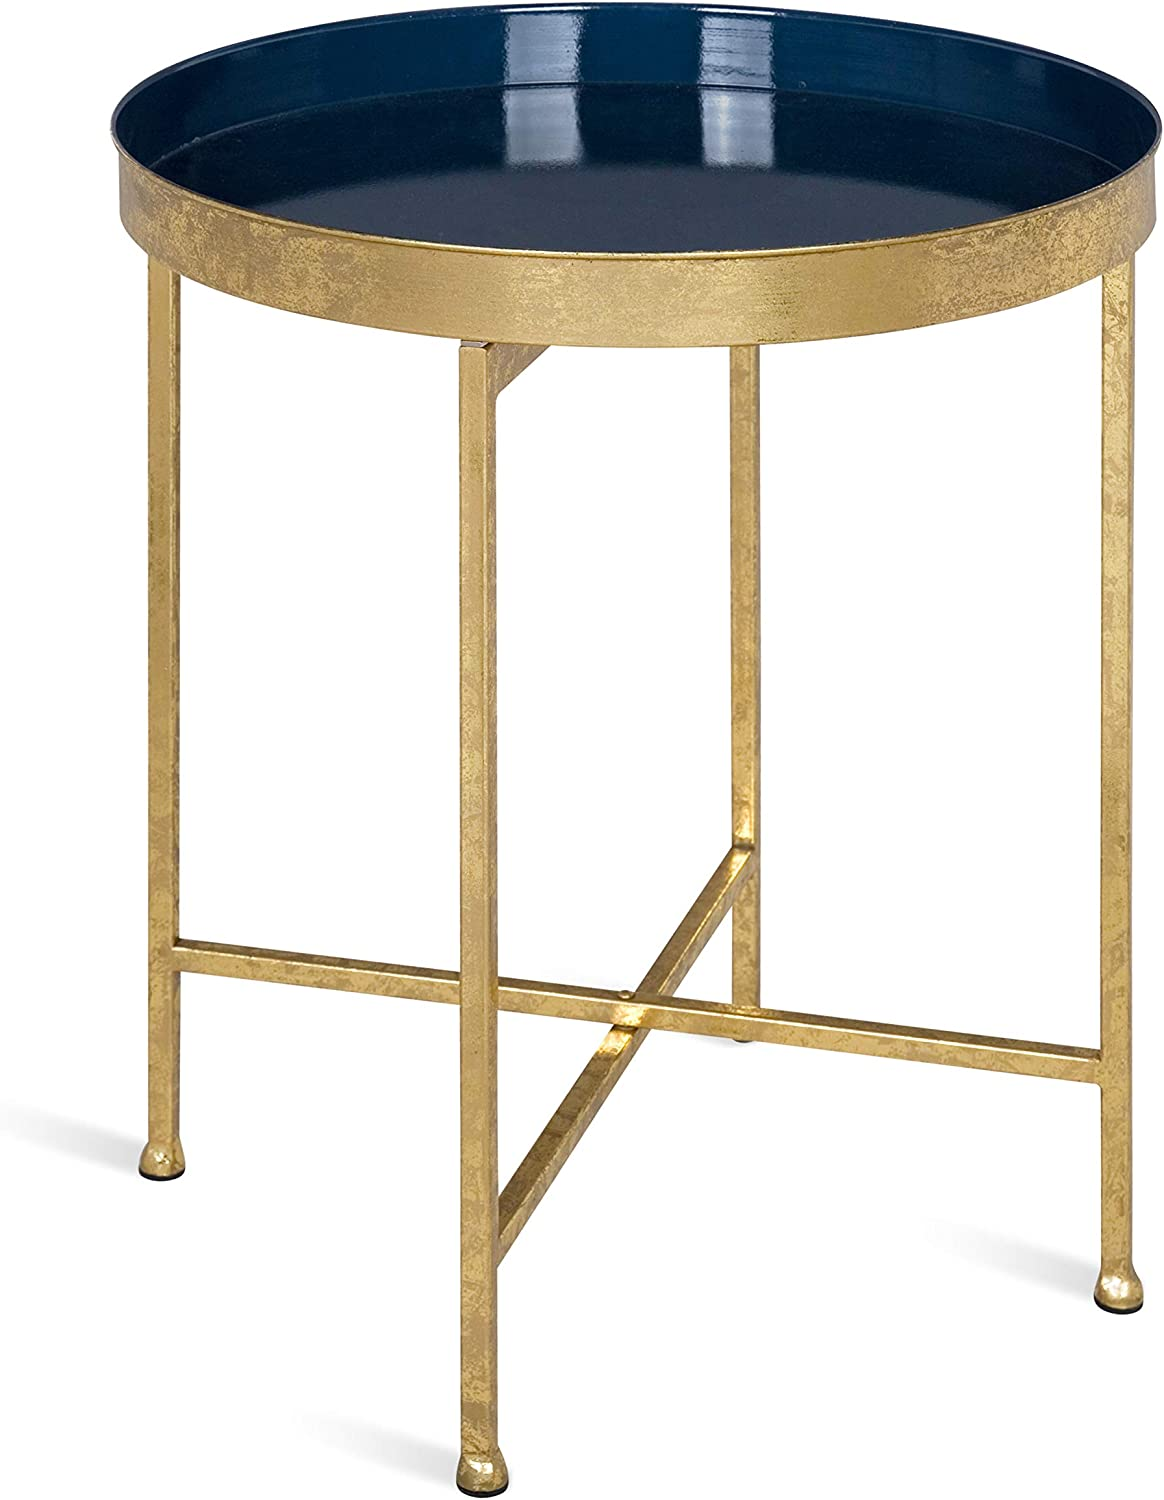 Kate and Laurel Celia Department store San Diego Mall Metal Foldable Accent Round Table 18.25